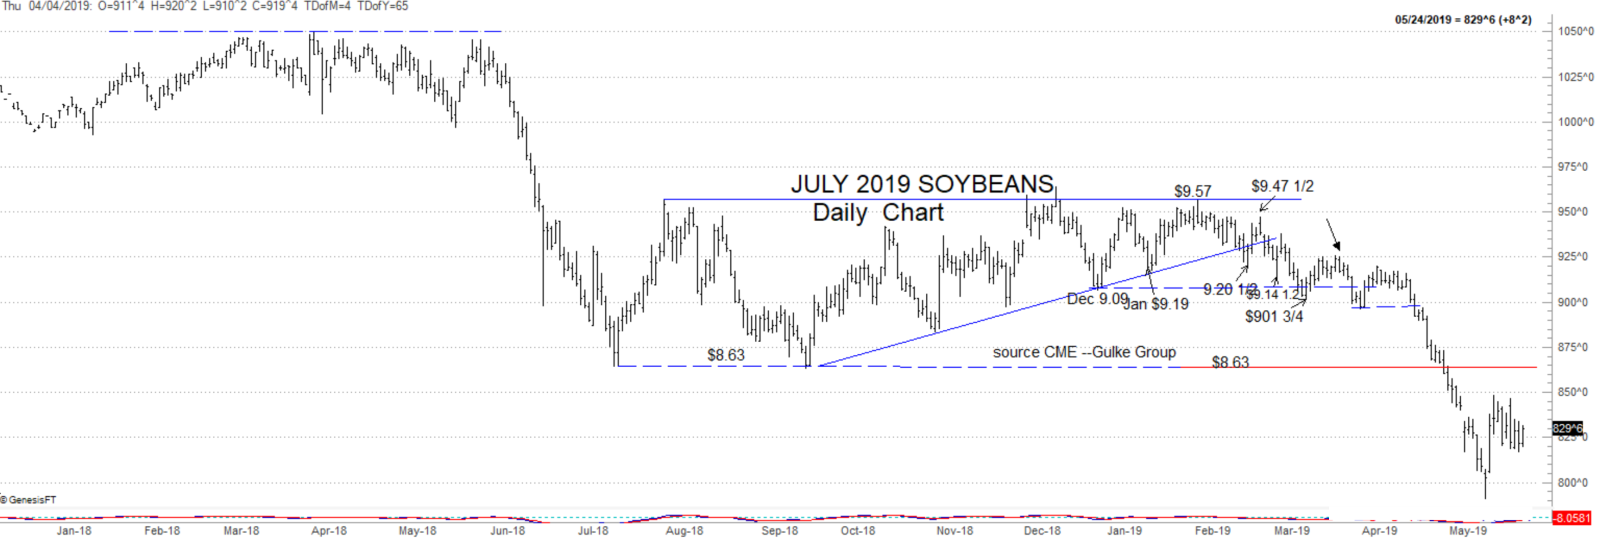 July 2019 soybeans